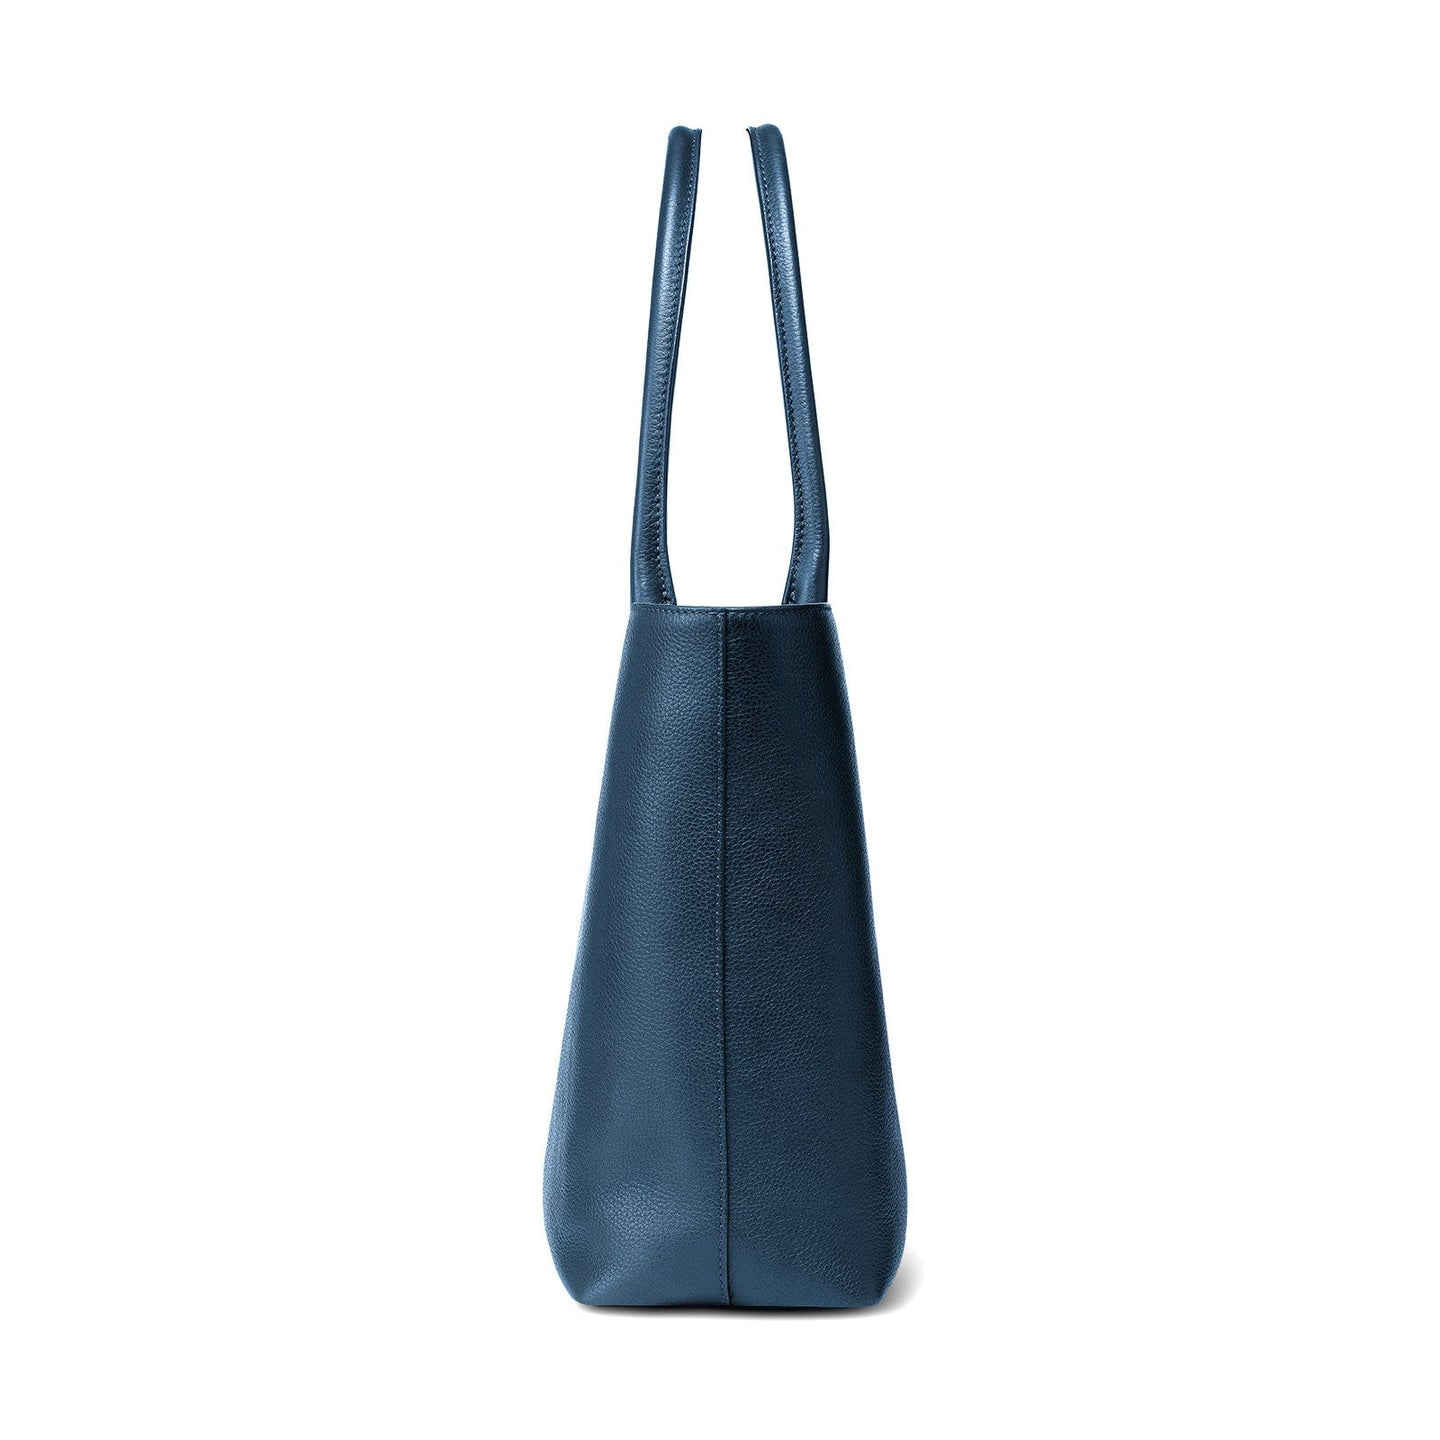 38493f657e121 The Soft Tote, $0 $359